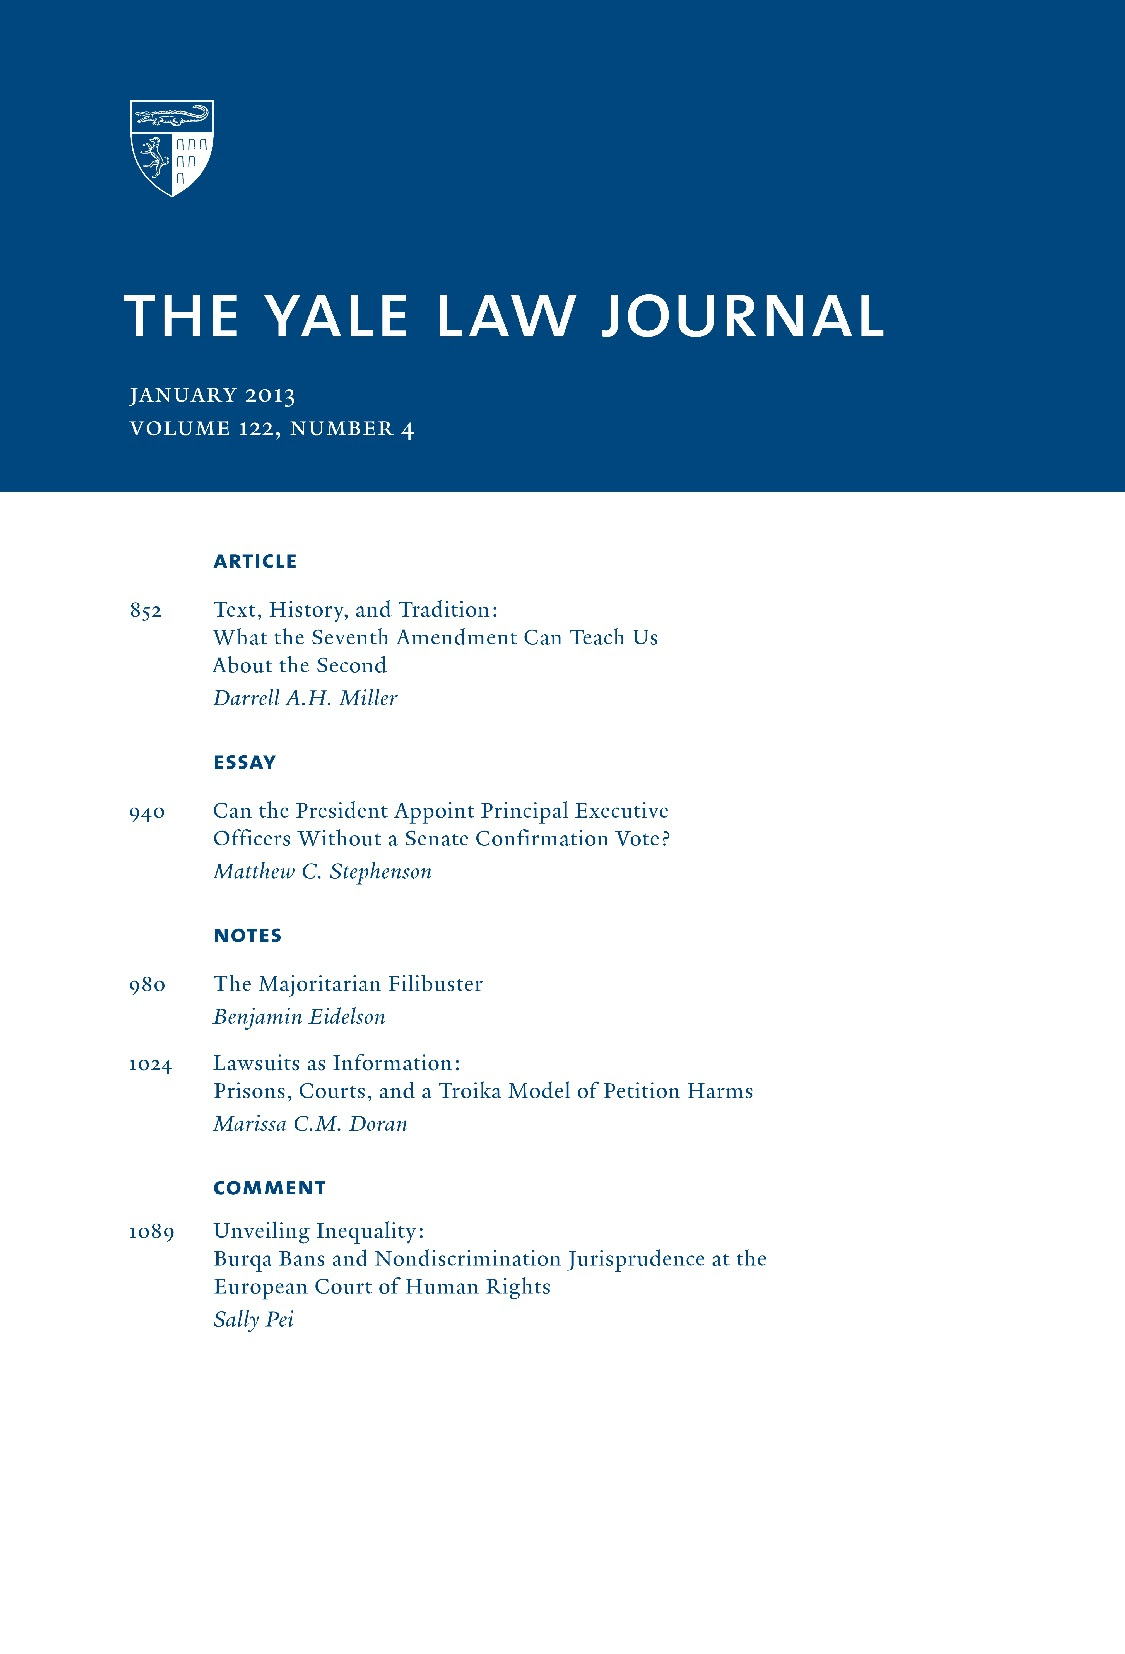 Yale Law Journal 2013 No 4 Explores Second Amendment Analysis Presidential Power To Appoint